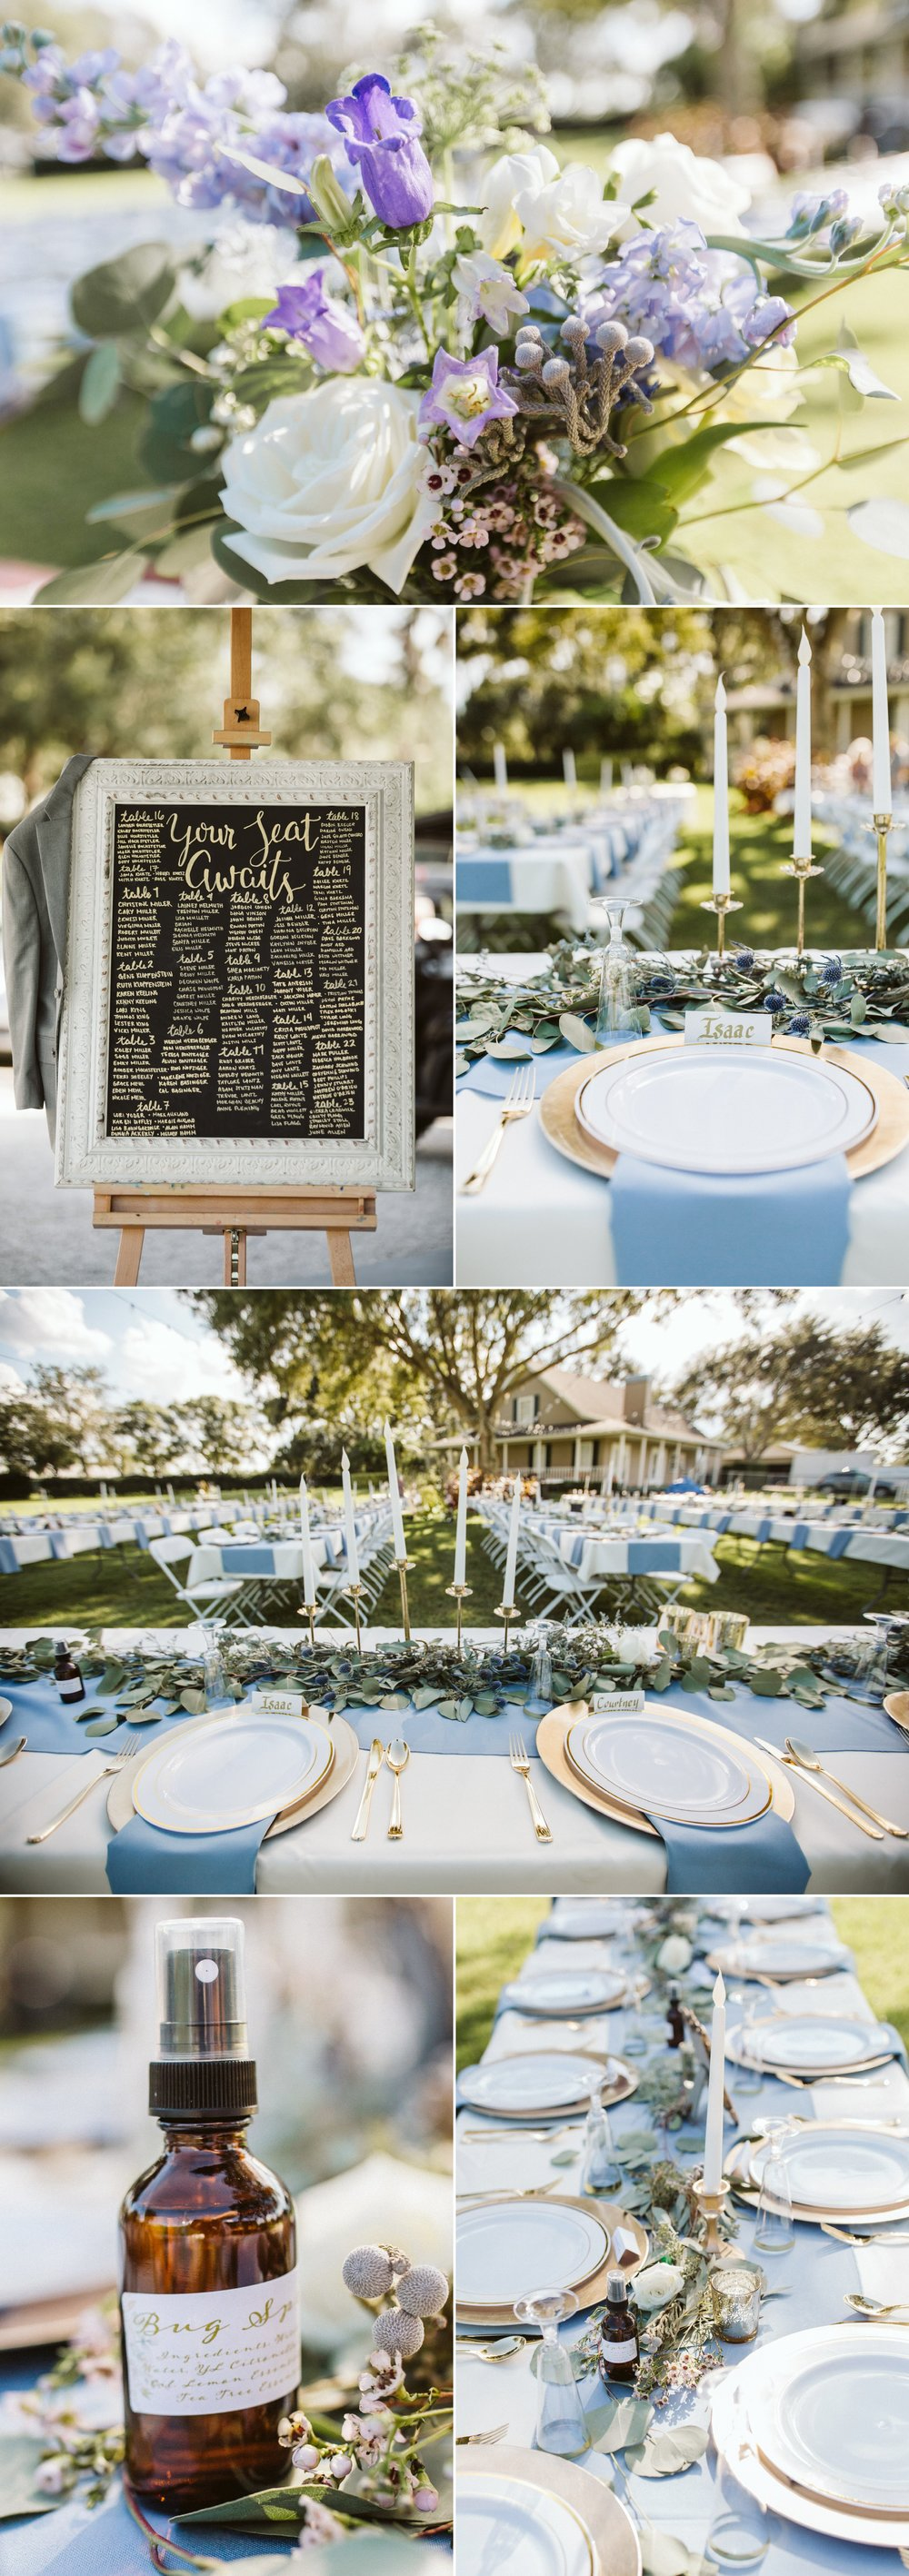 Romantic Floral Outdoor Field Chapel Wedding- Sarasota Florida- Courtney & Isaac14.jpg